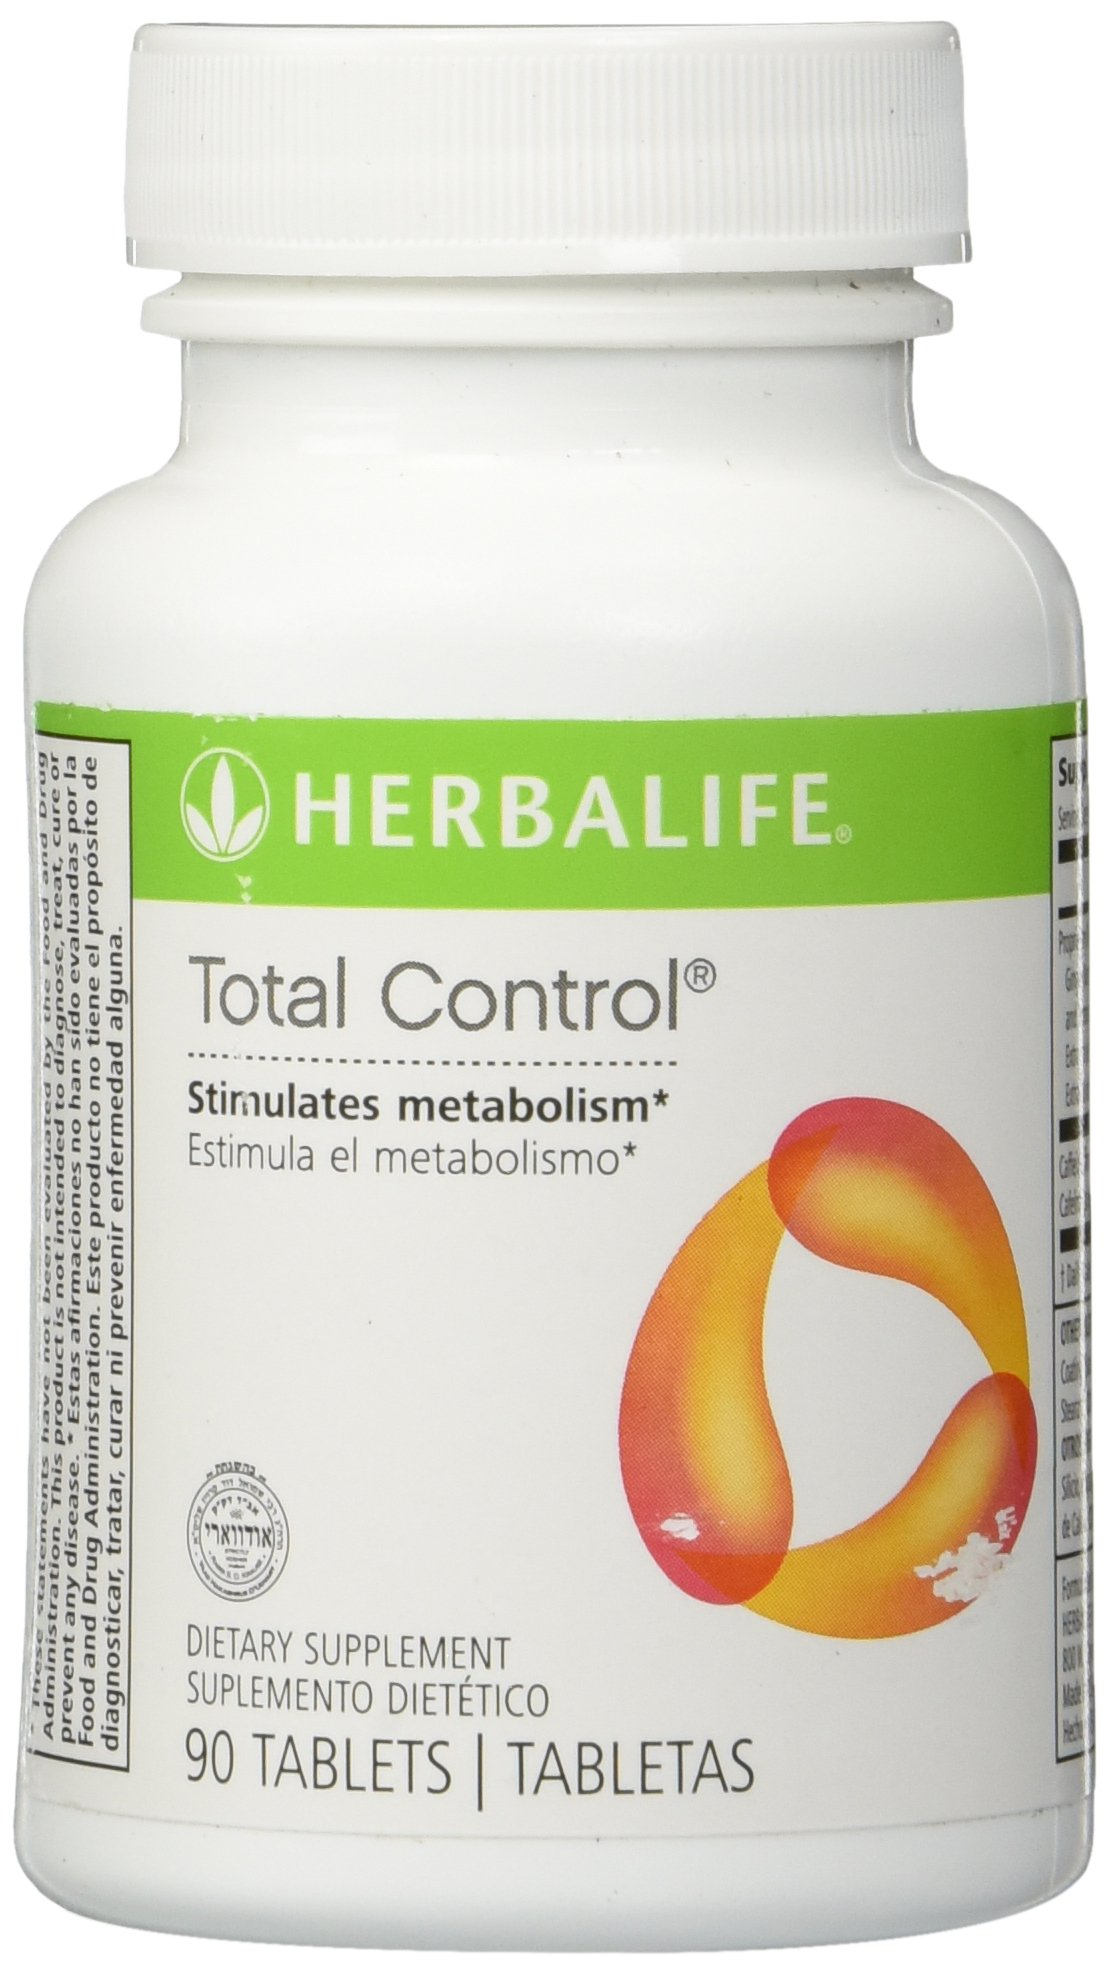 HERBALIFE TOTAL CONTROL 90 TABLETS